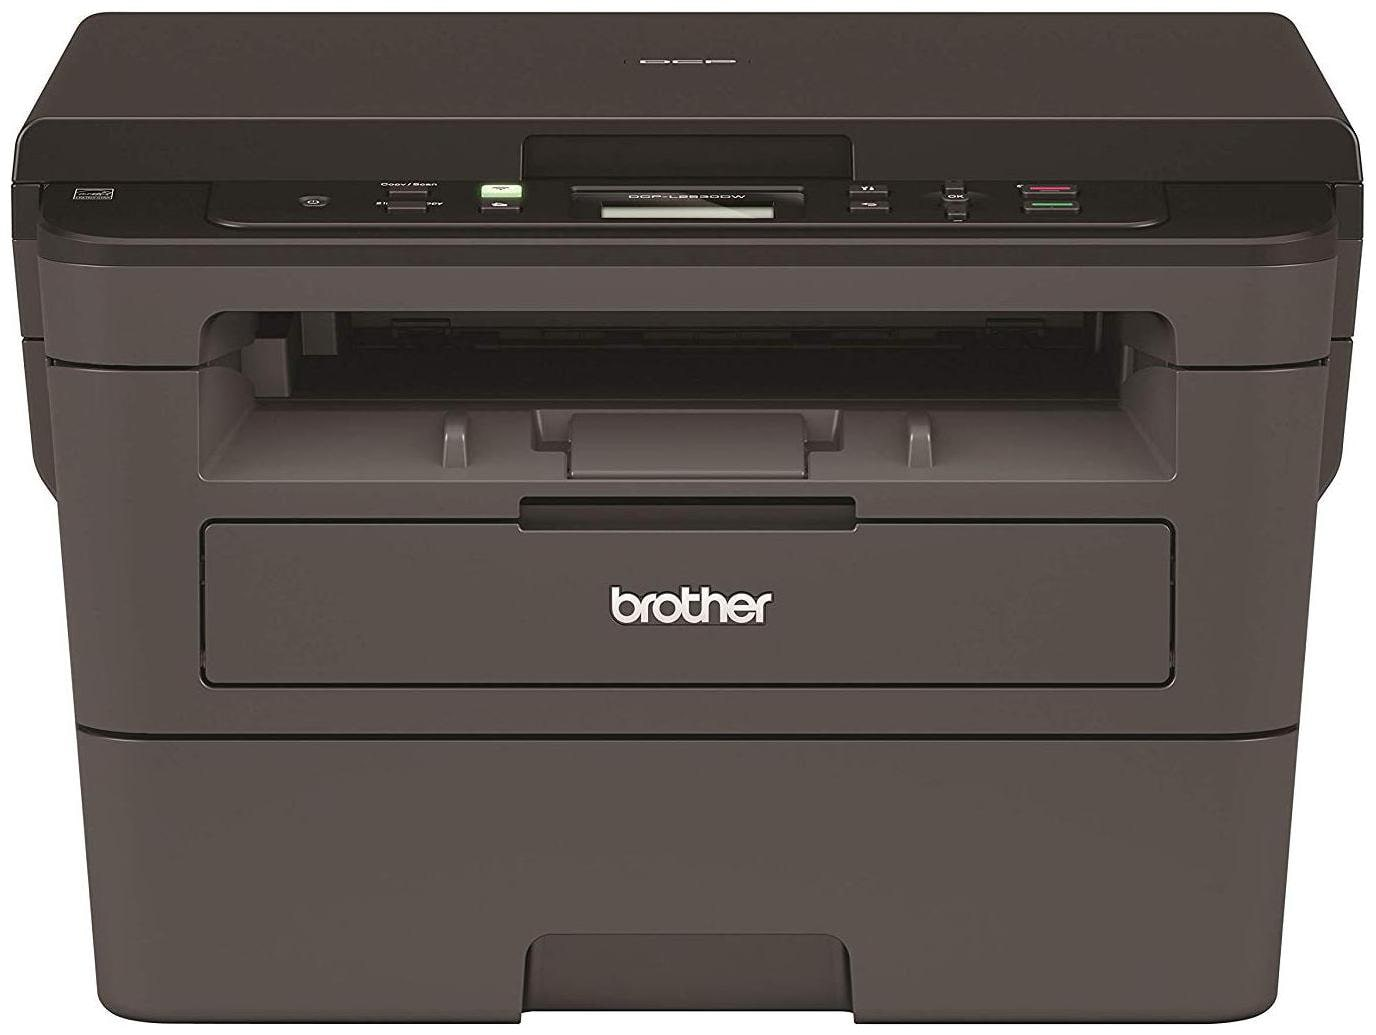 Brother DCP L2531DW Multi Function Laser Printer